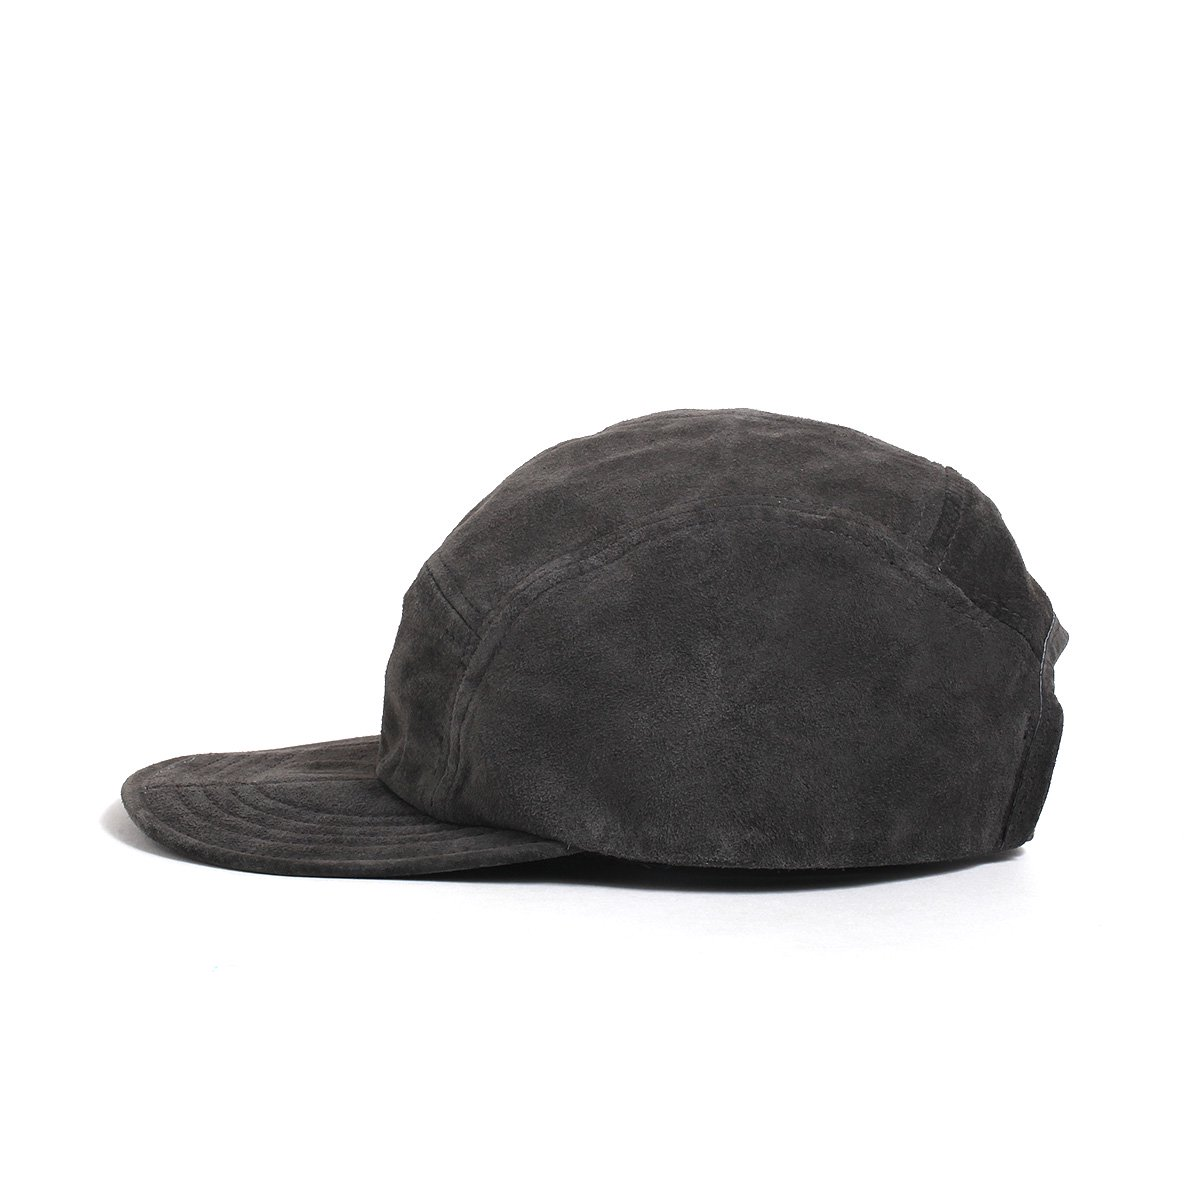 PIG SUEDE BILLS JETCAP 詳細画像4